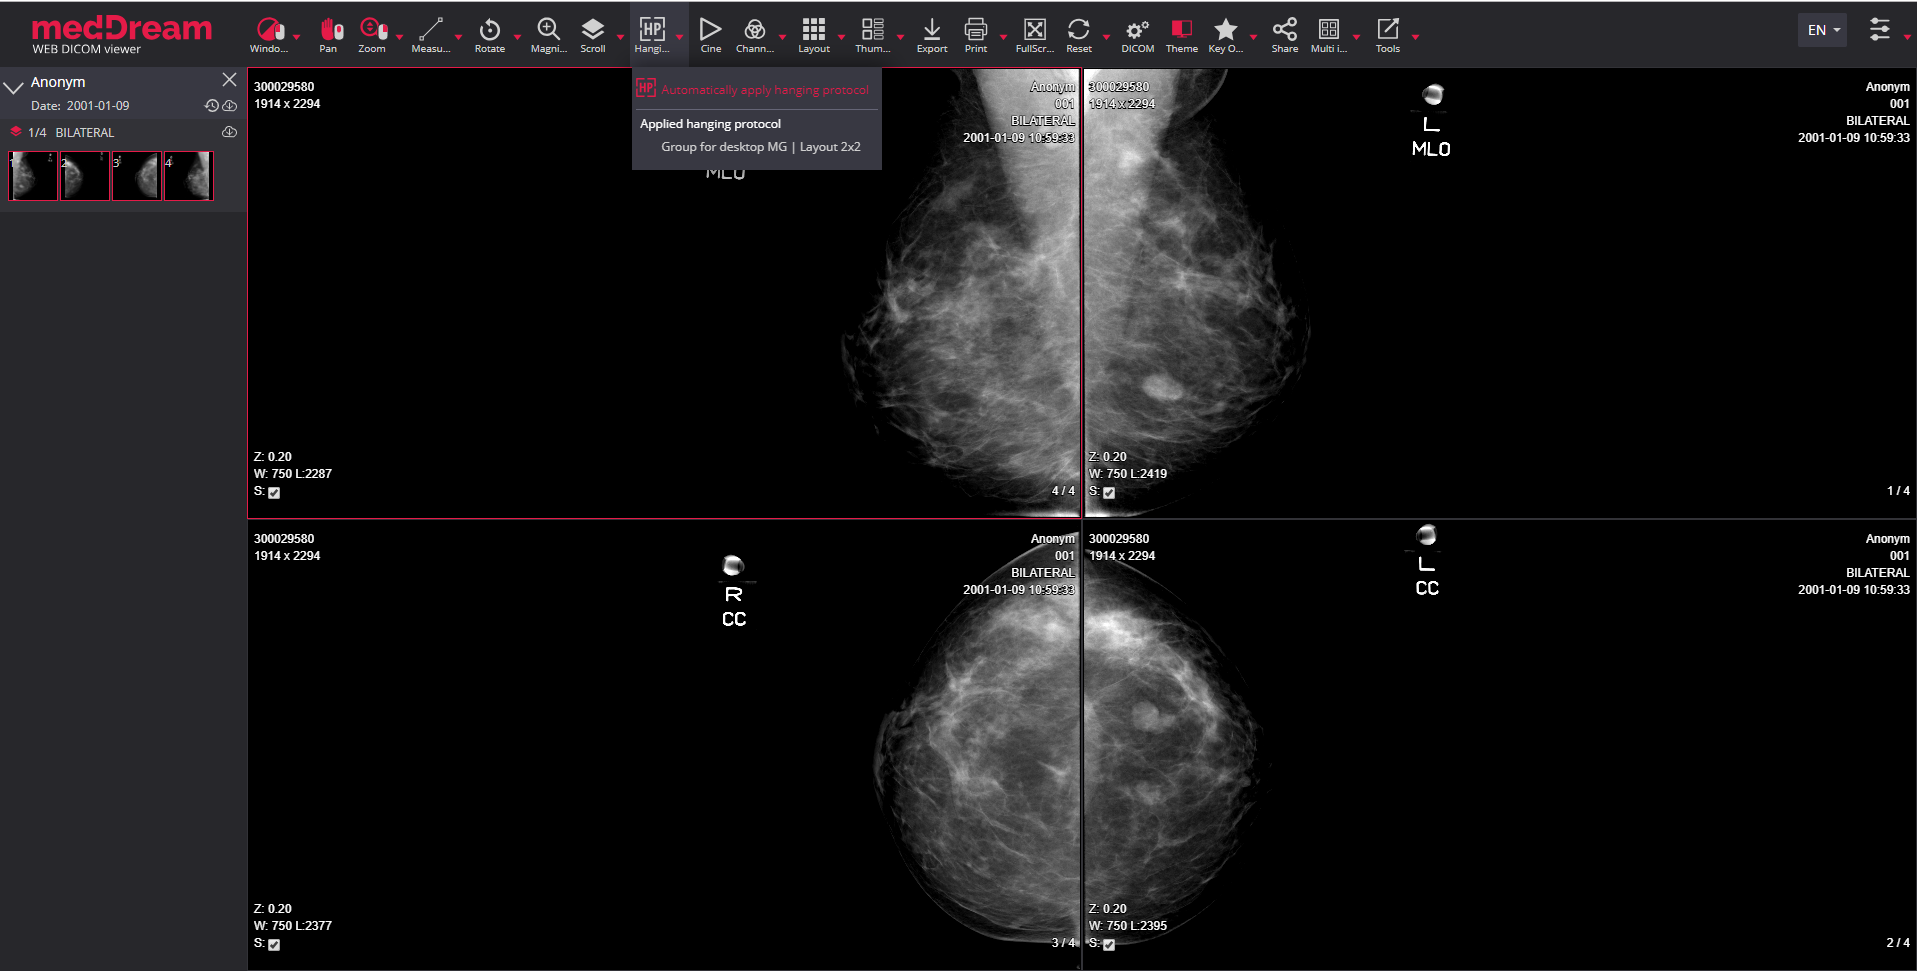 meddream dicom viewer hanging protocols